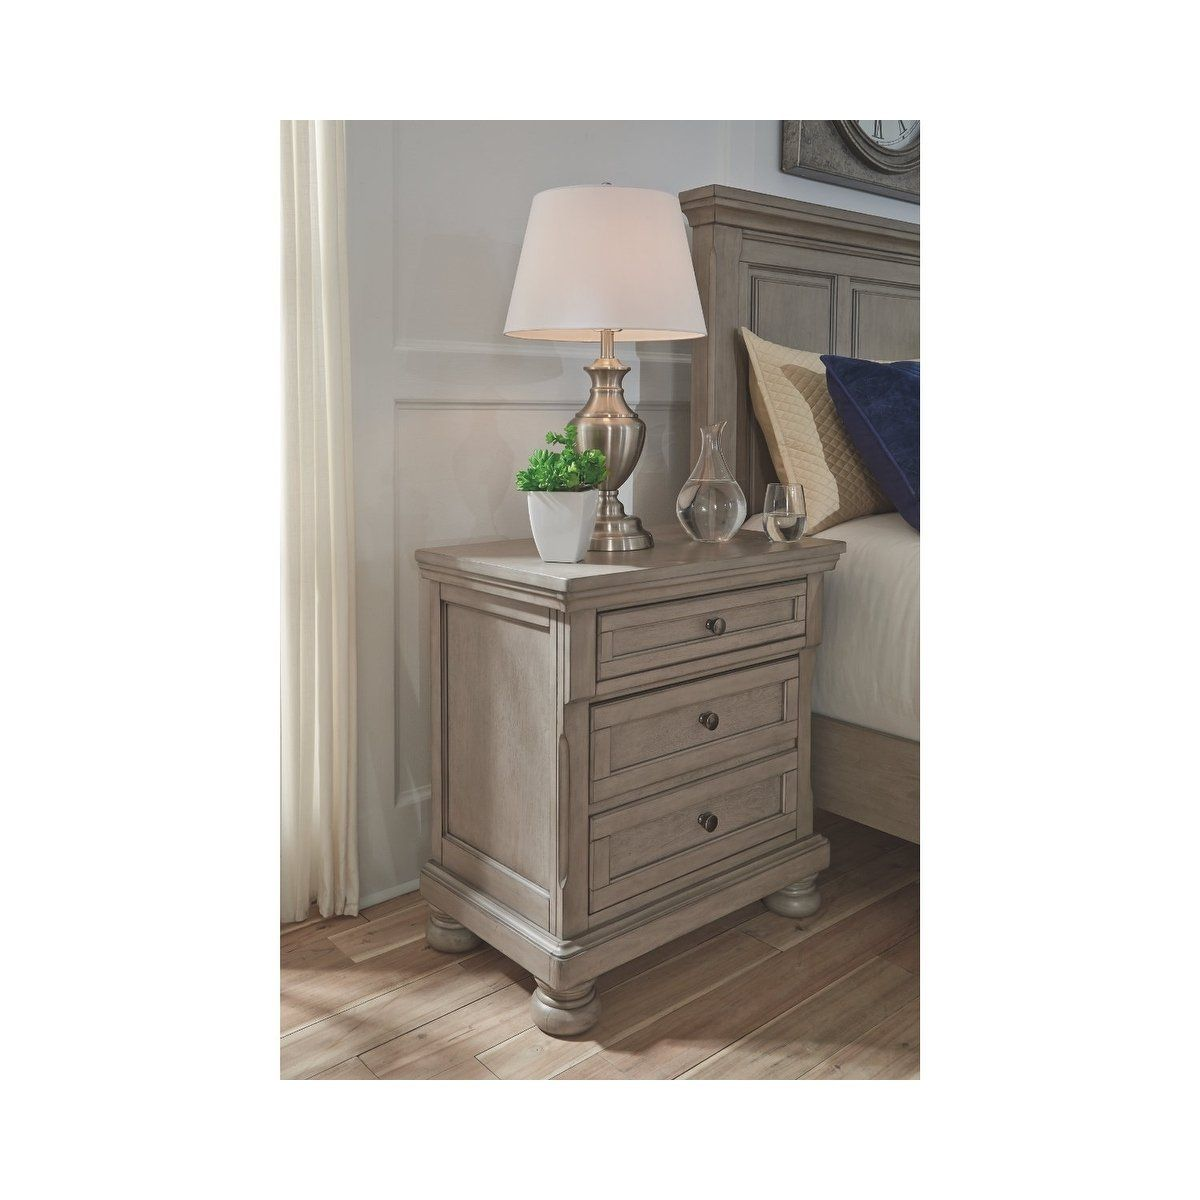 Signature Design By Ashley Lettner Light Grey Wood 2 Drawer Casual Style Nightstand Gray Signature Design By Ashley Ashley Furniture Industries Furniture